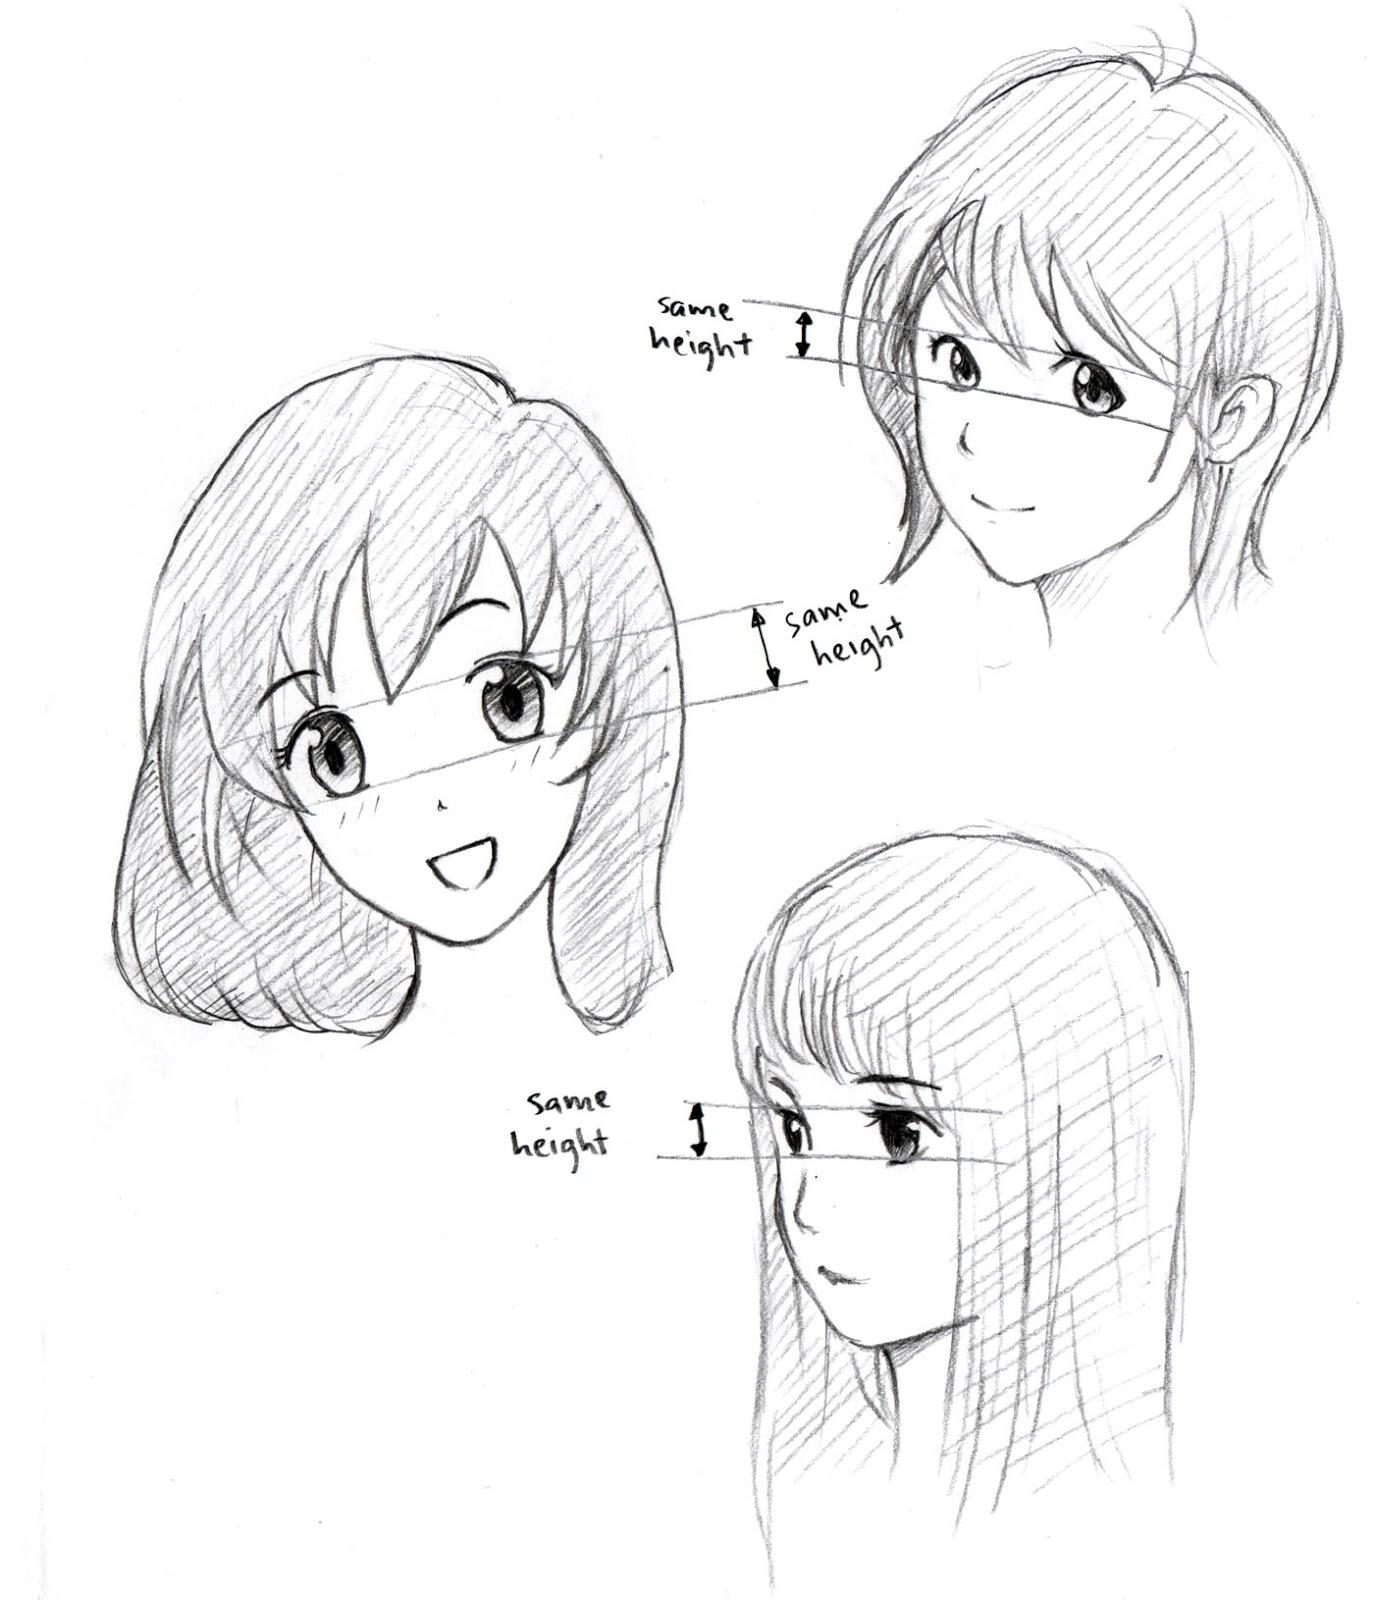 johnnybro u0026 39 s how to draw manga